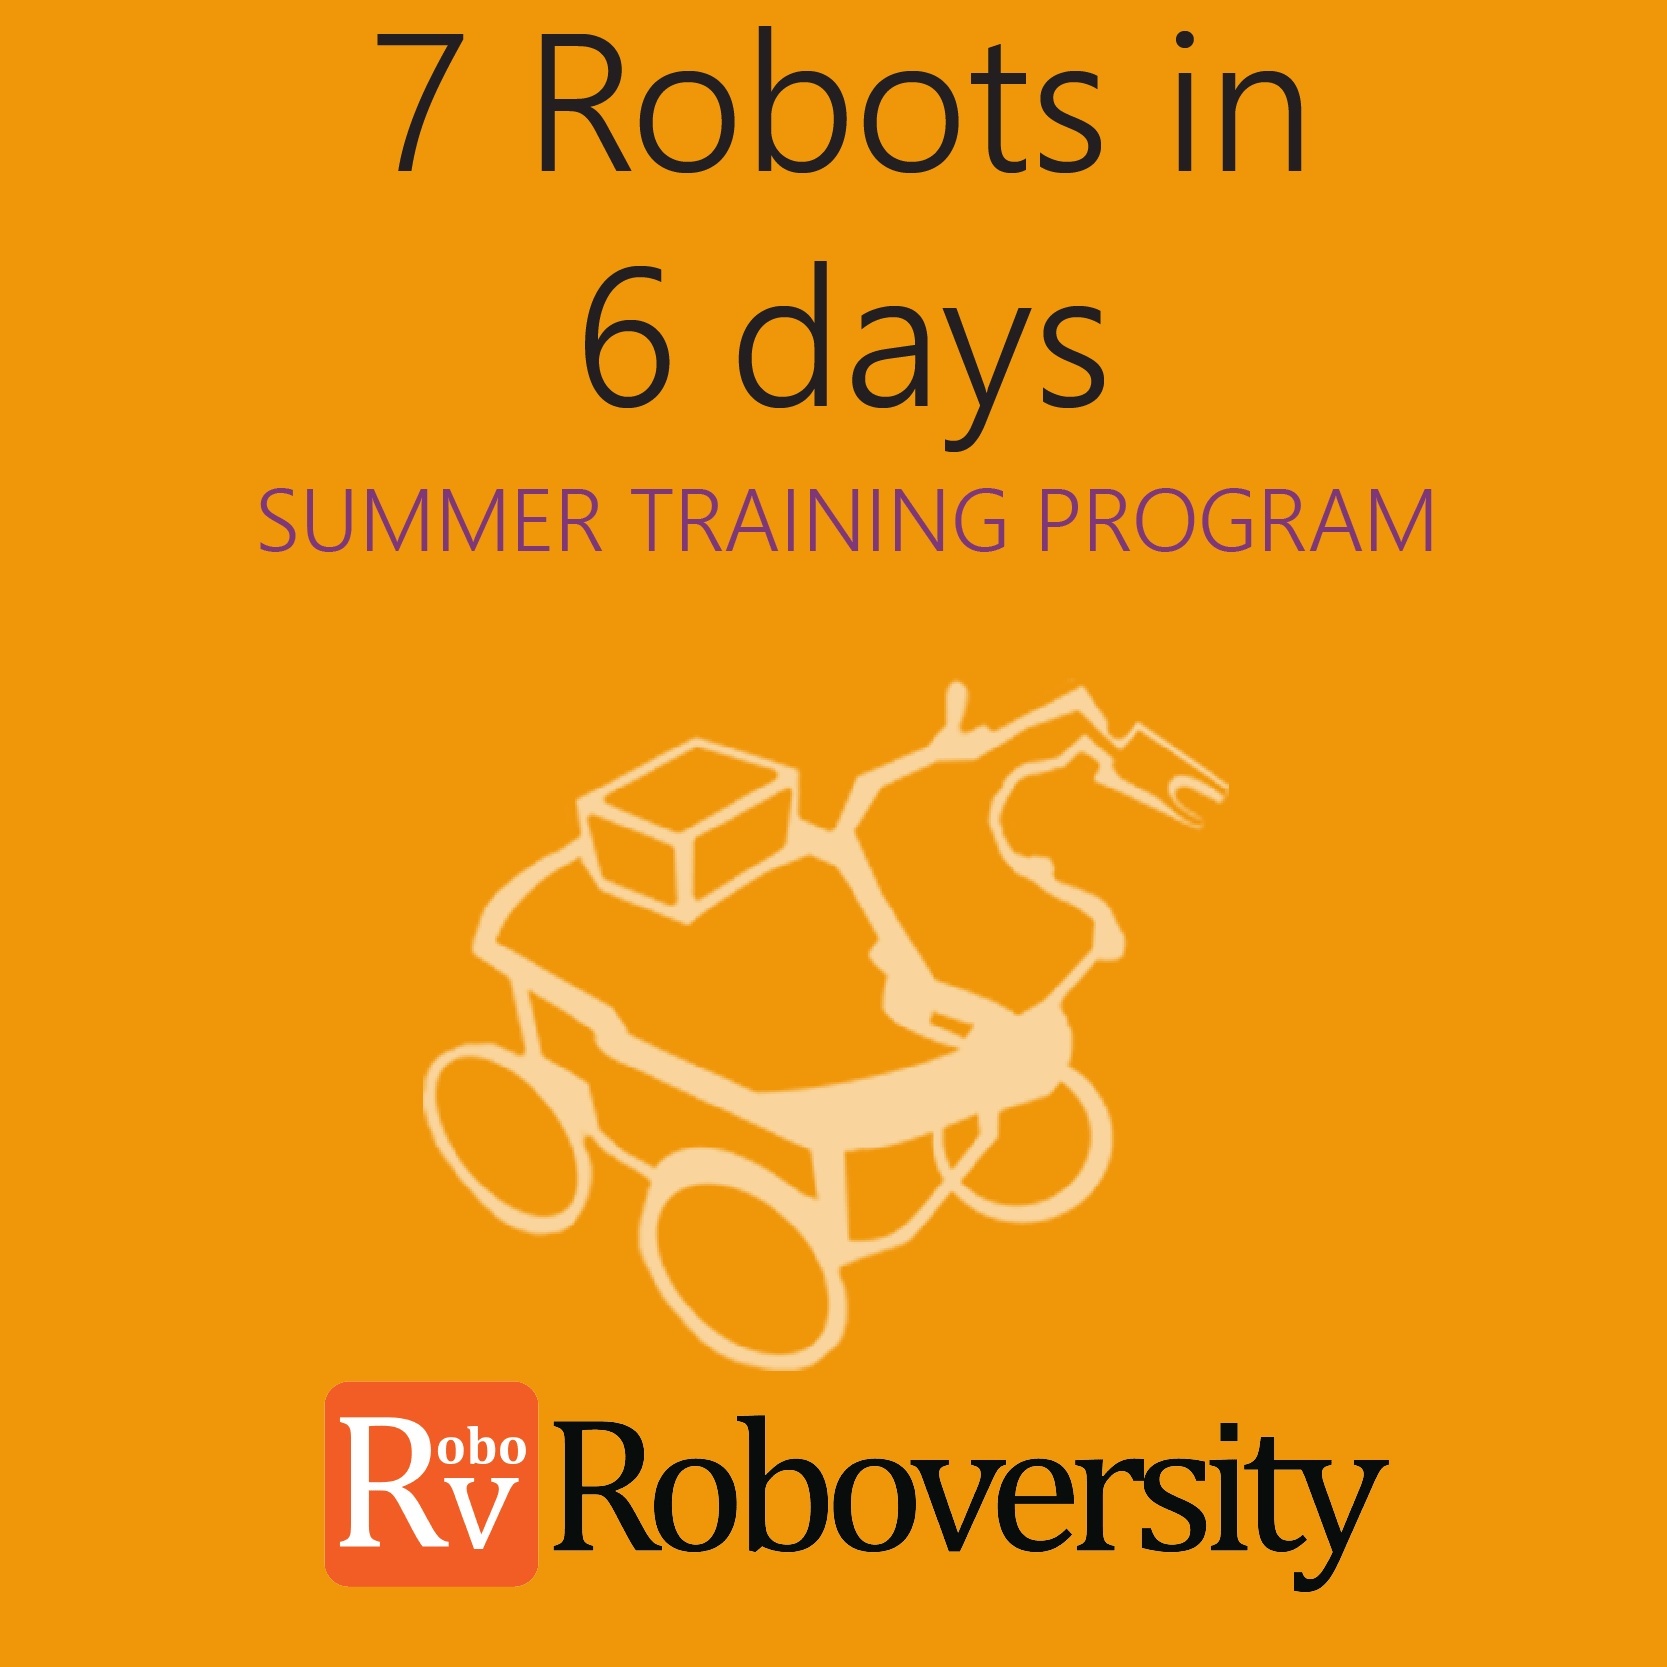 Summer Training Program in Robotics - 7 Robots in 6 Days in Bangalore